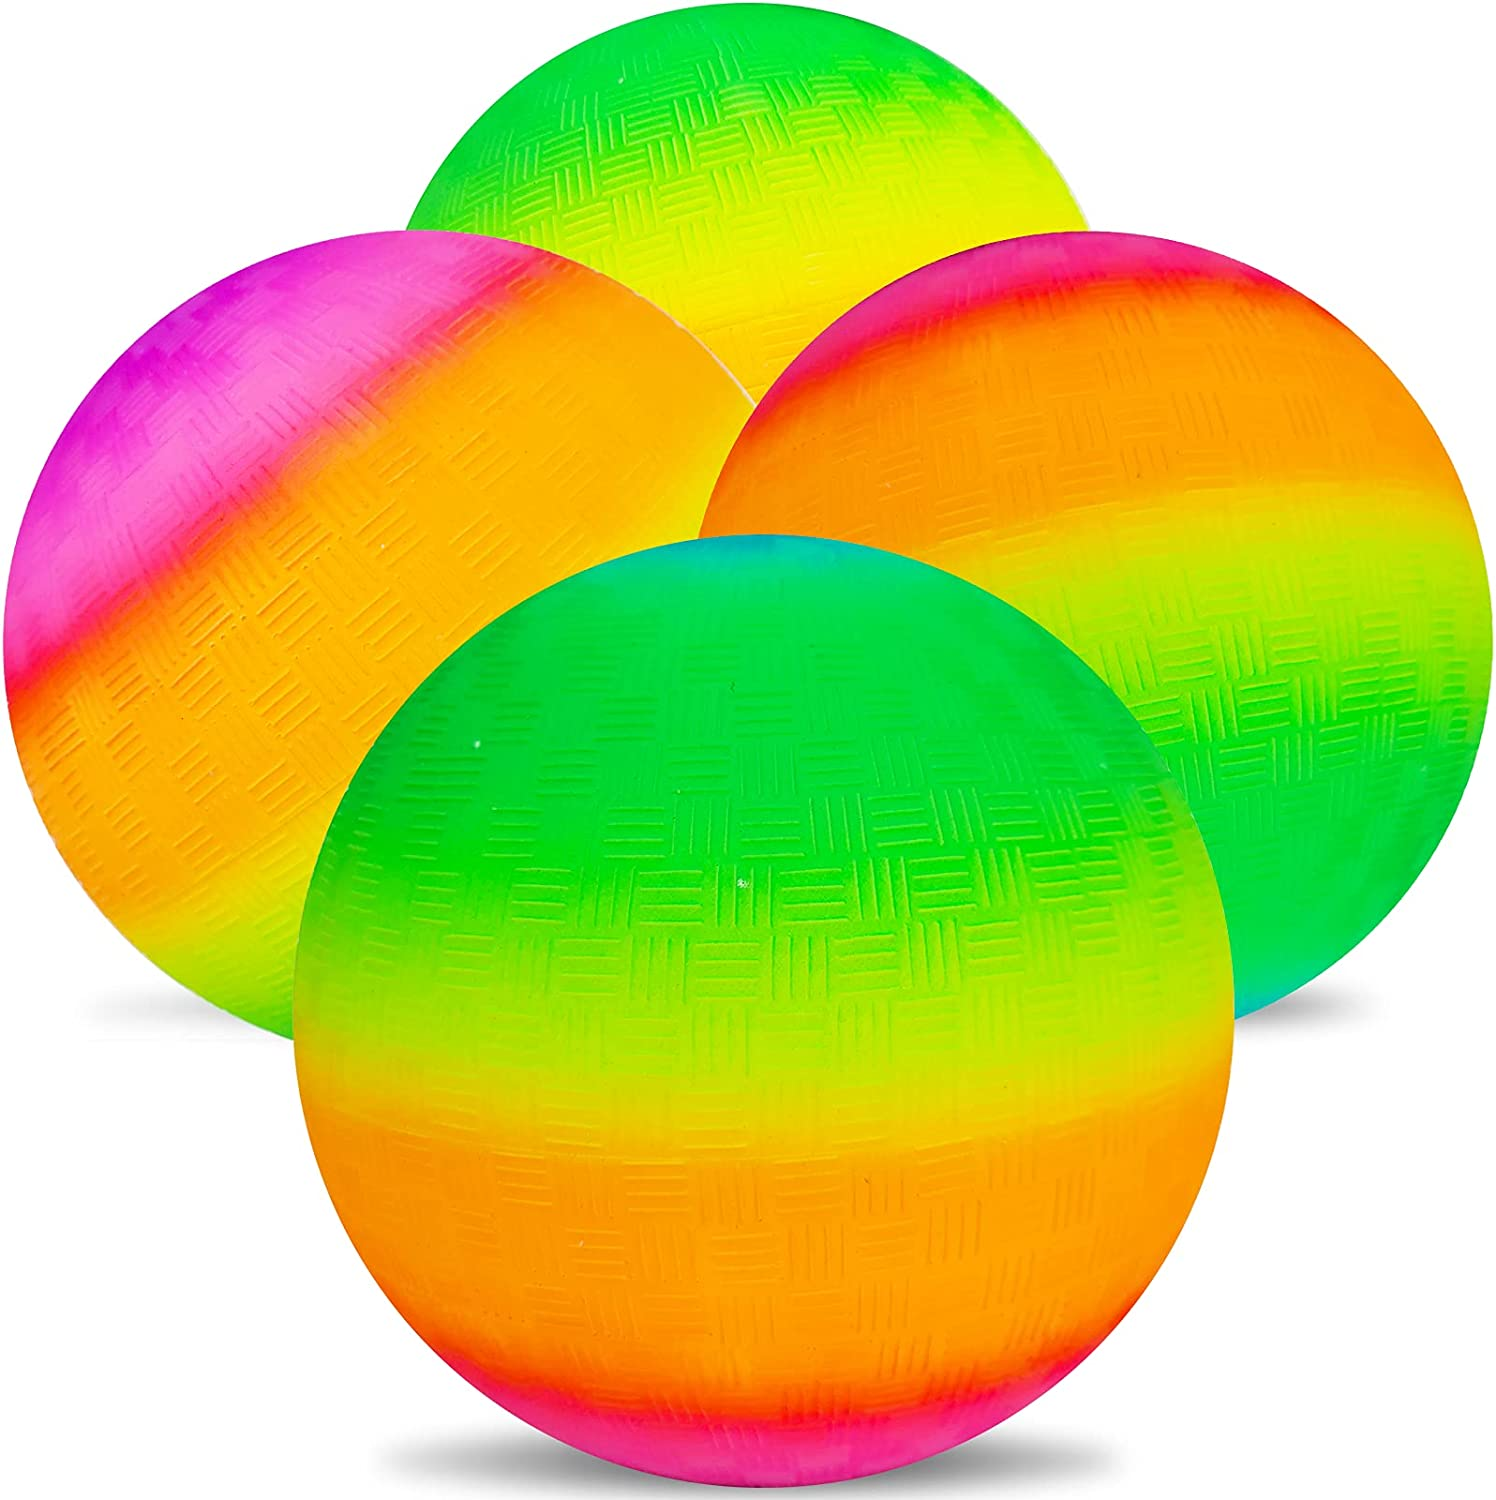 Visen 4Pcs Rainbow Playground Balls for Kids/&Adults with 1 Hand Pump,8.5Inch Colorful Rubber Bouncy Balls,Inflatable Multi Colors Kick Balls Handball,Durable Indoor/&Outdoor Play Toys